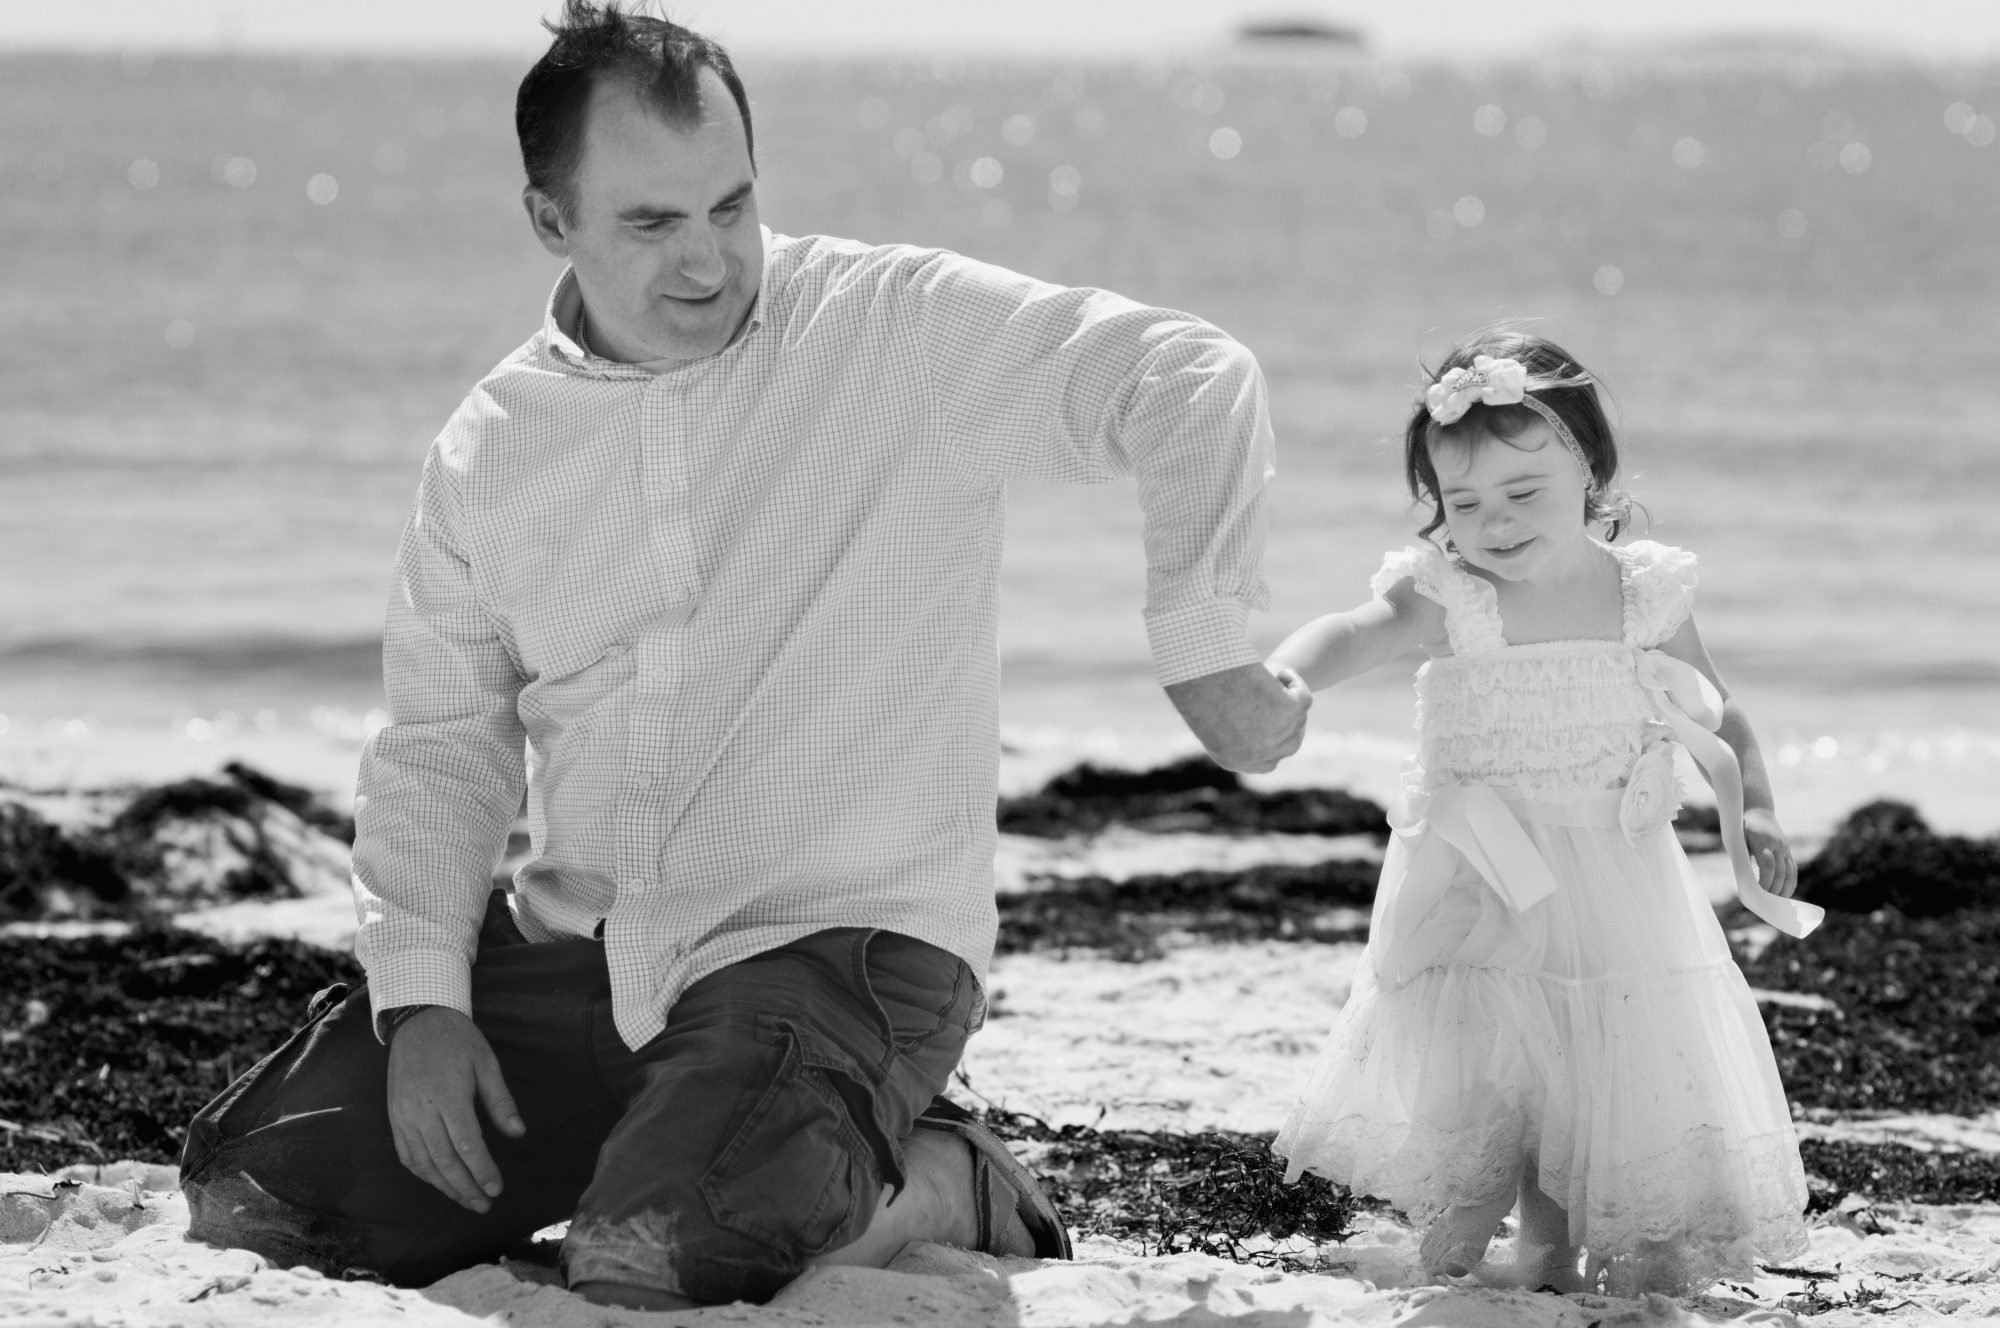 Father and daughter playing in the sand at Pemaquid Beach, Maine.